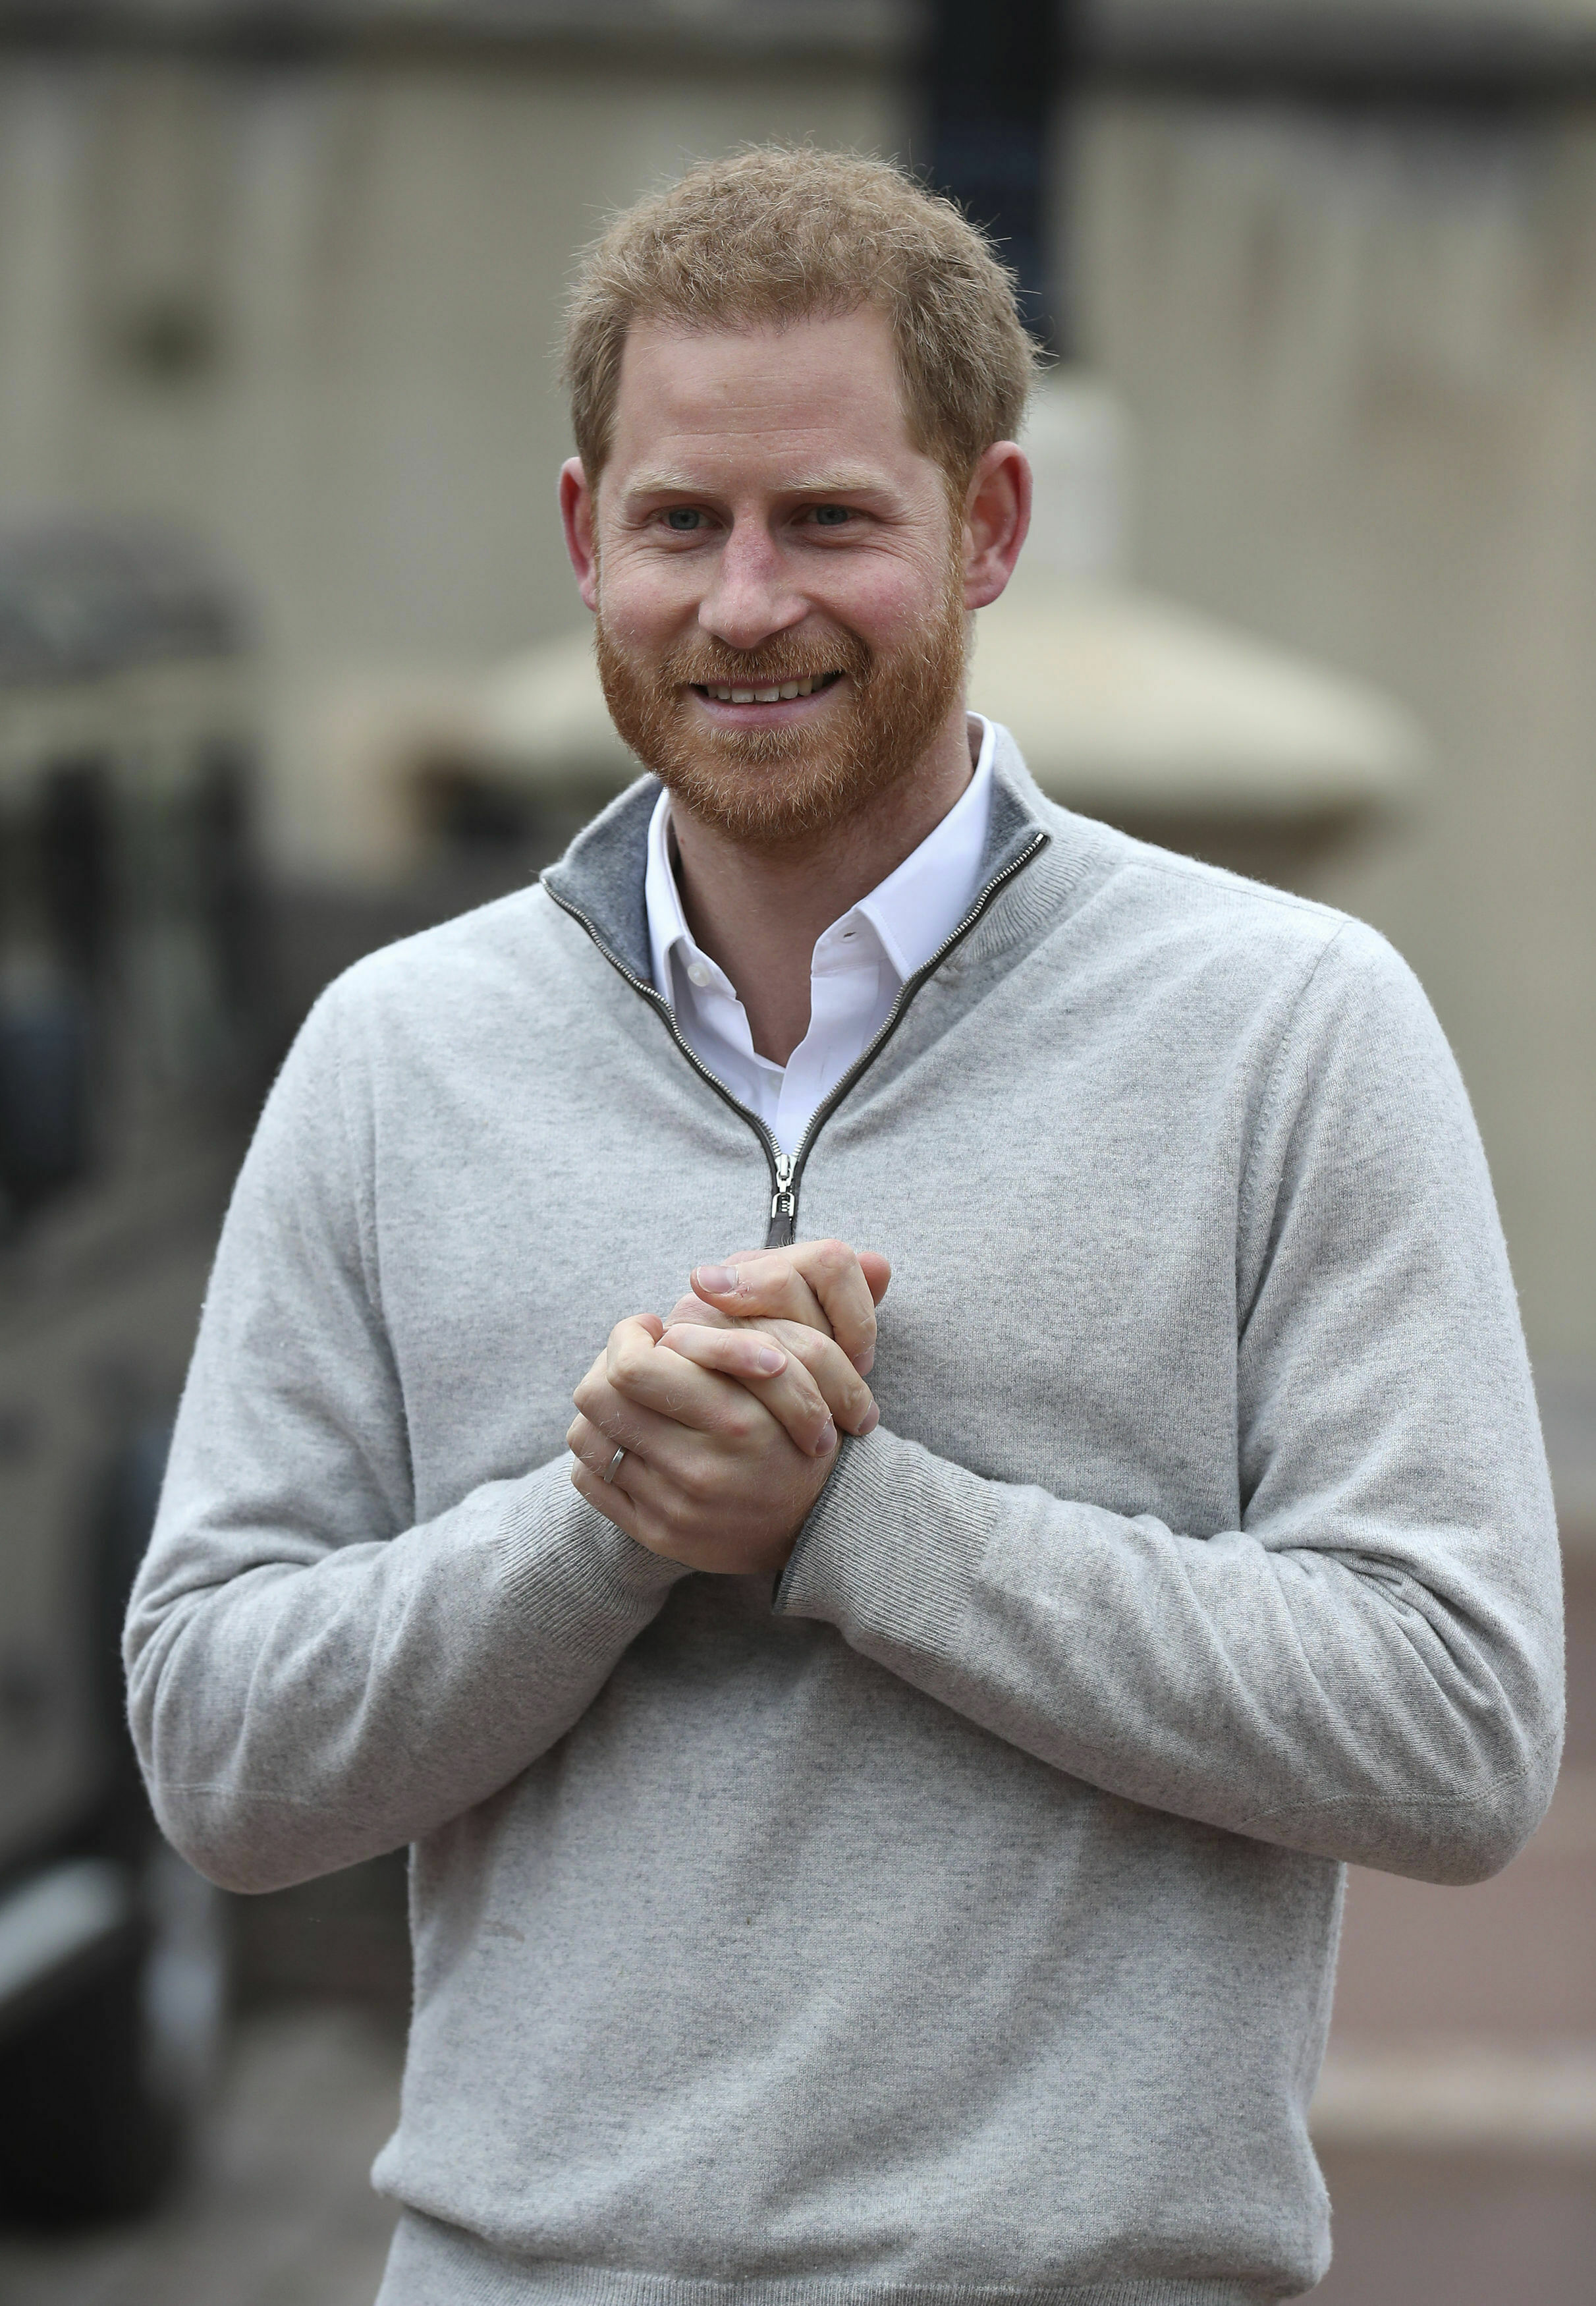 Prince Harry was almost in tears as he spoke to press about the birth of his first child. Credit: PA